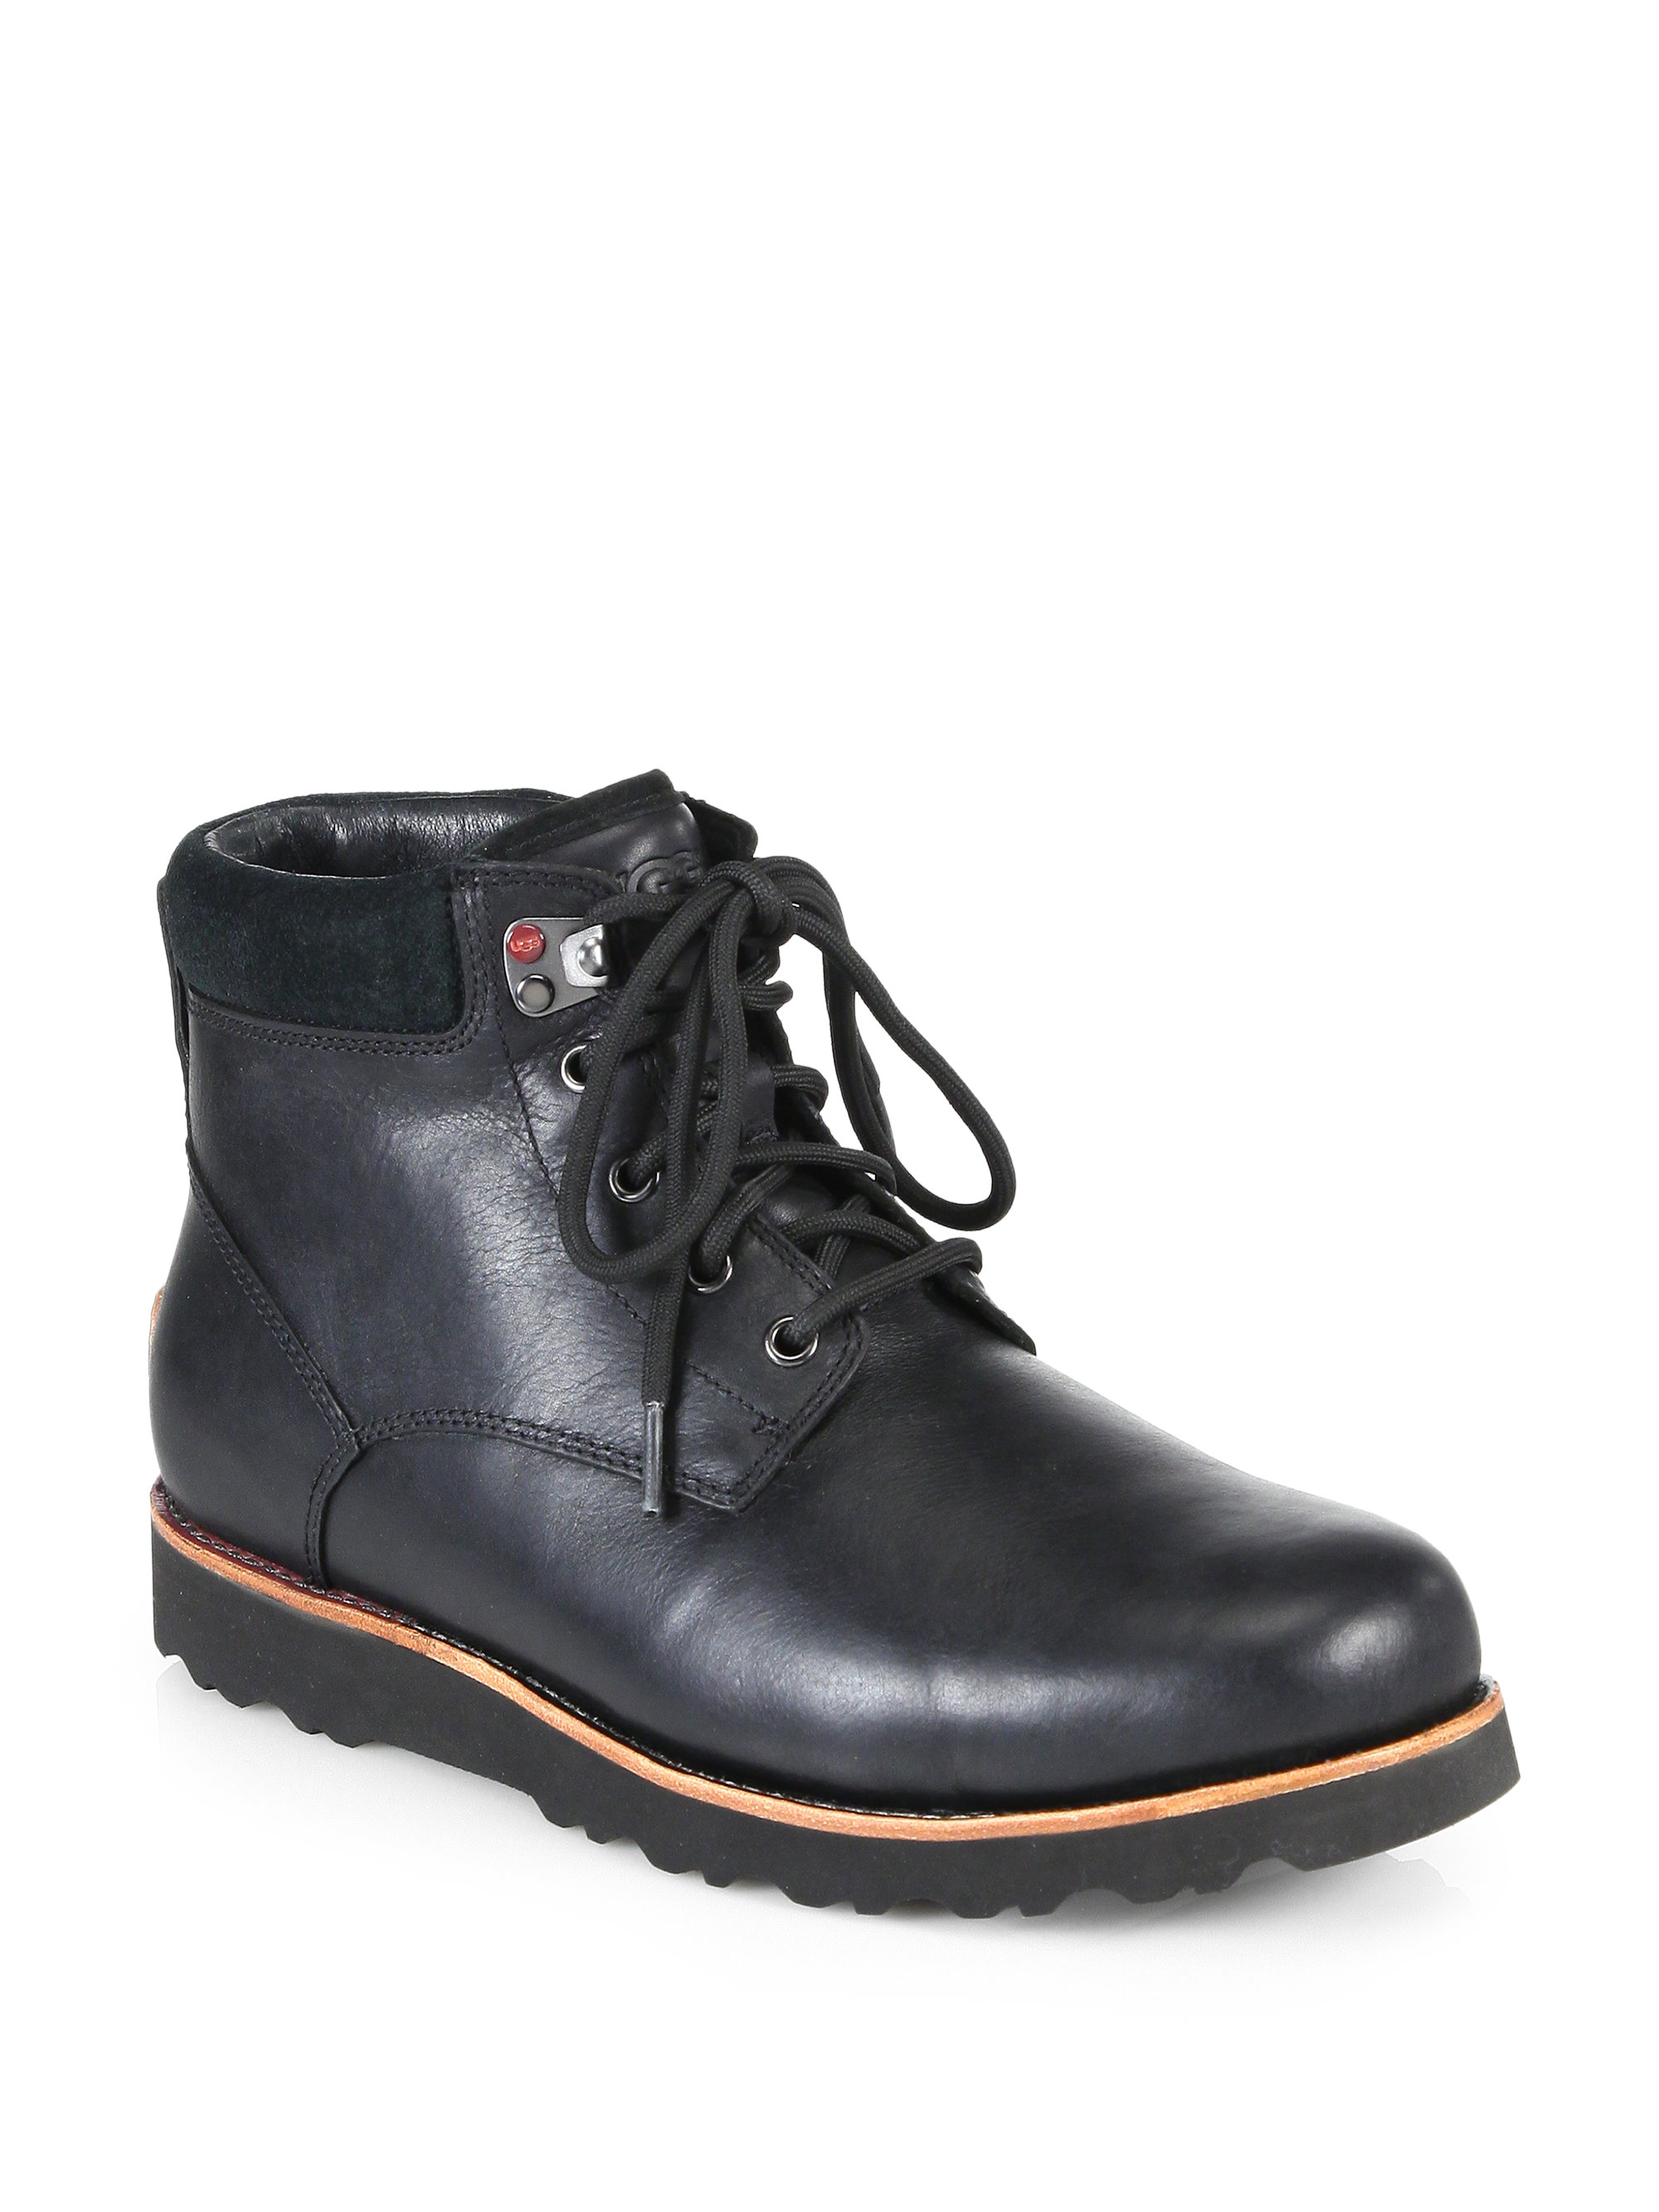 Ugg Seton Leather Lace Up Boots In Black For Men Lyst